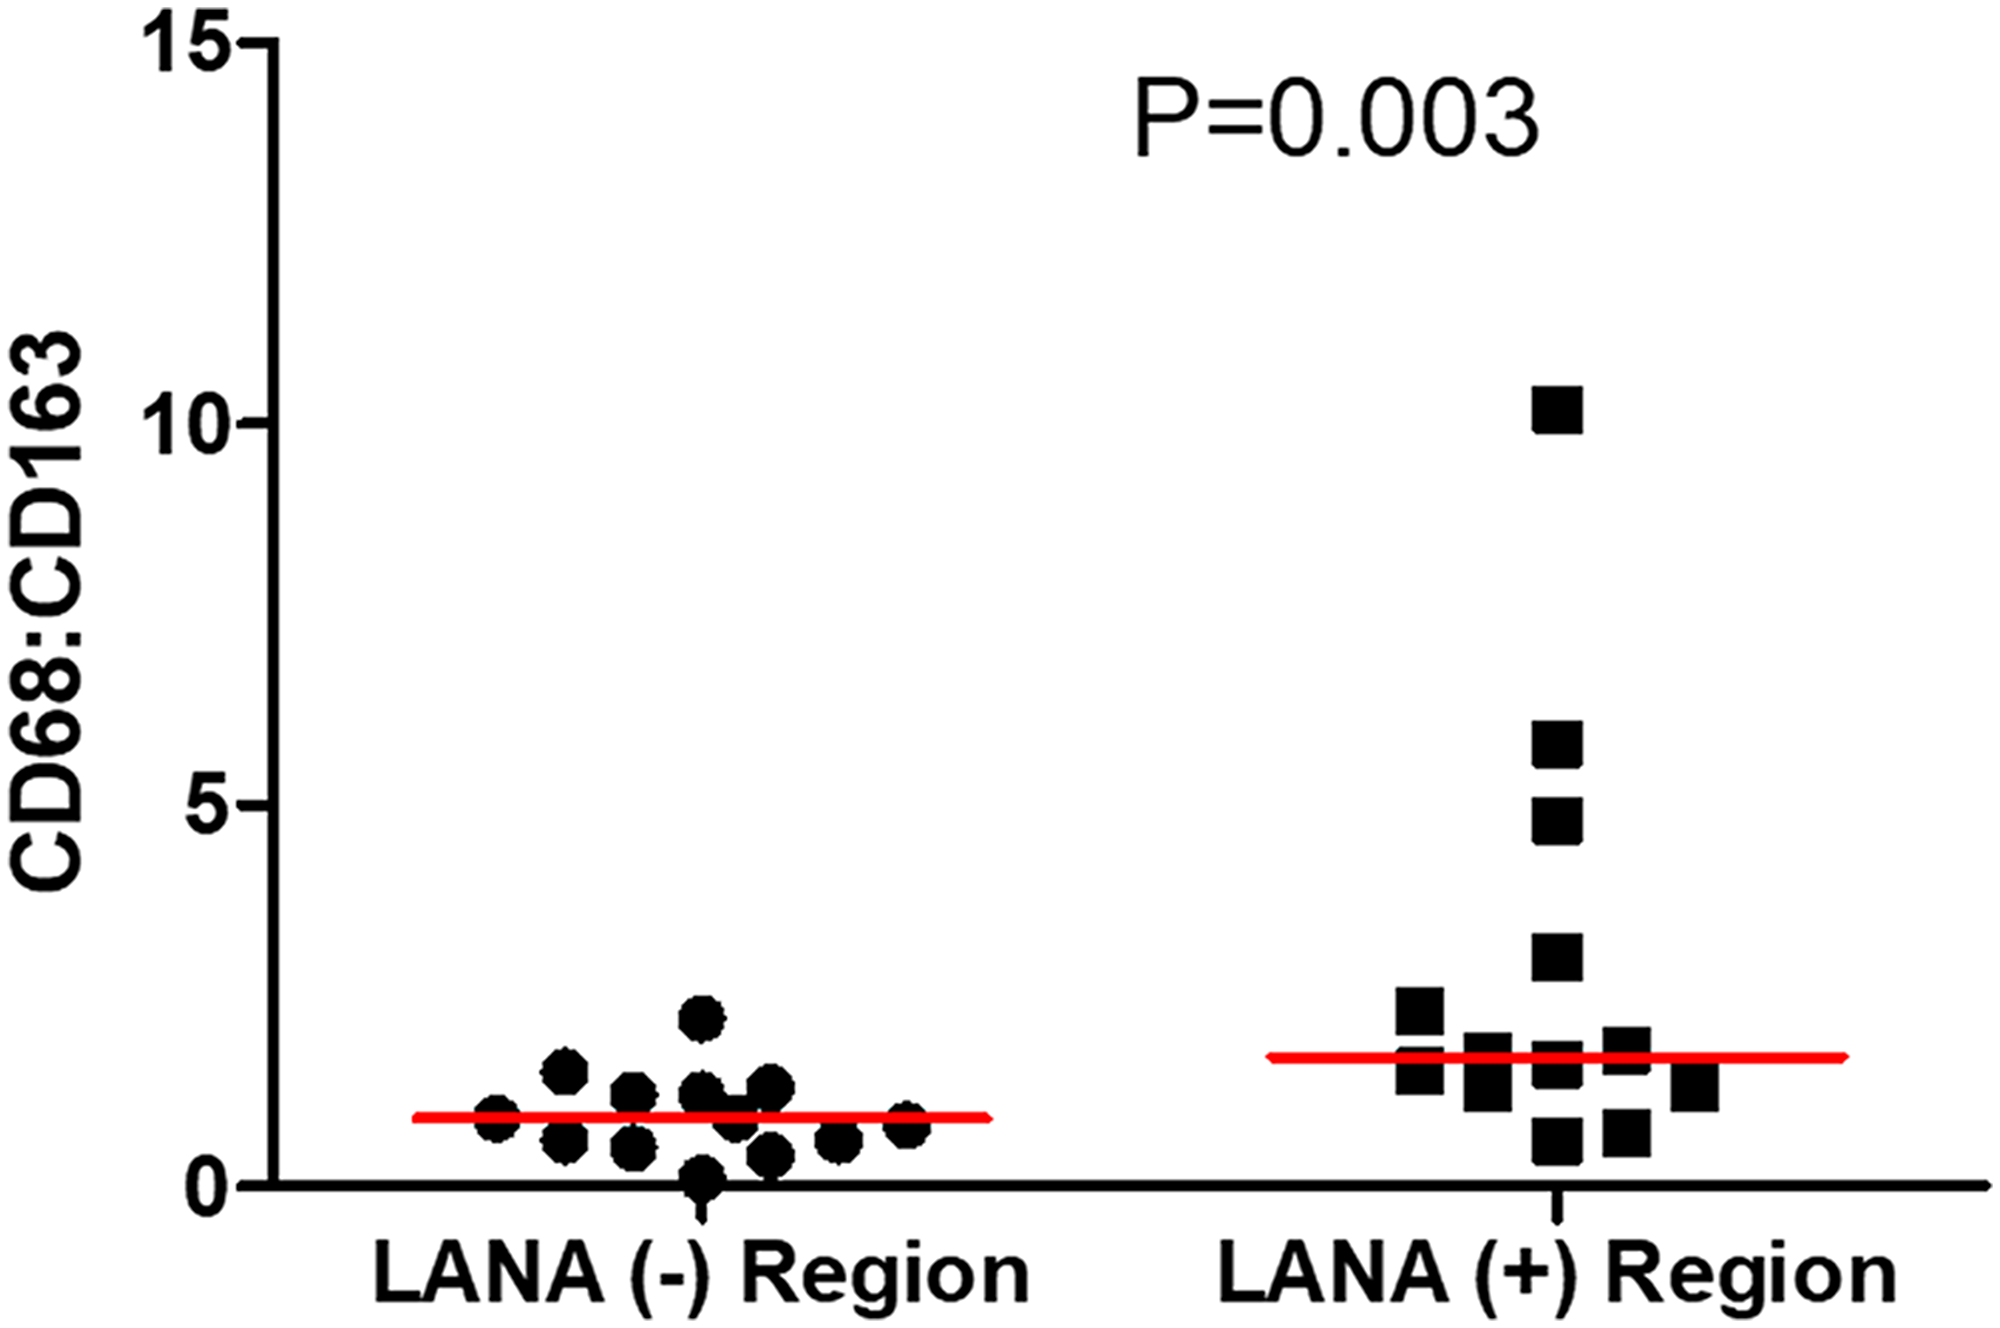 The ratio of CD68 to CD163 cells in LANA+ and LANA- regions of KS biopsies.